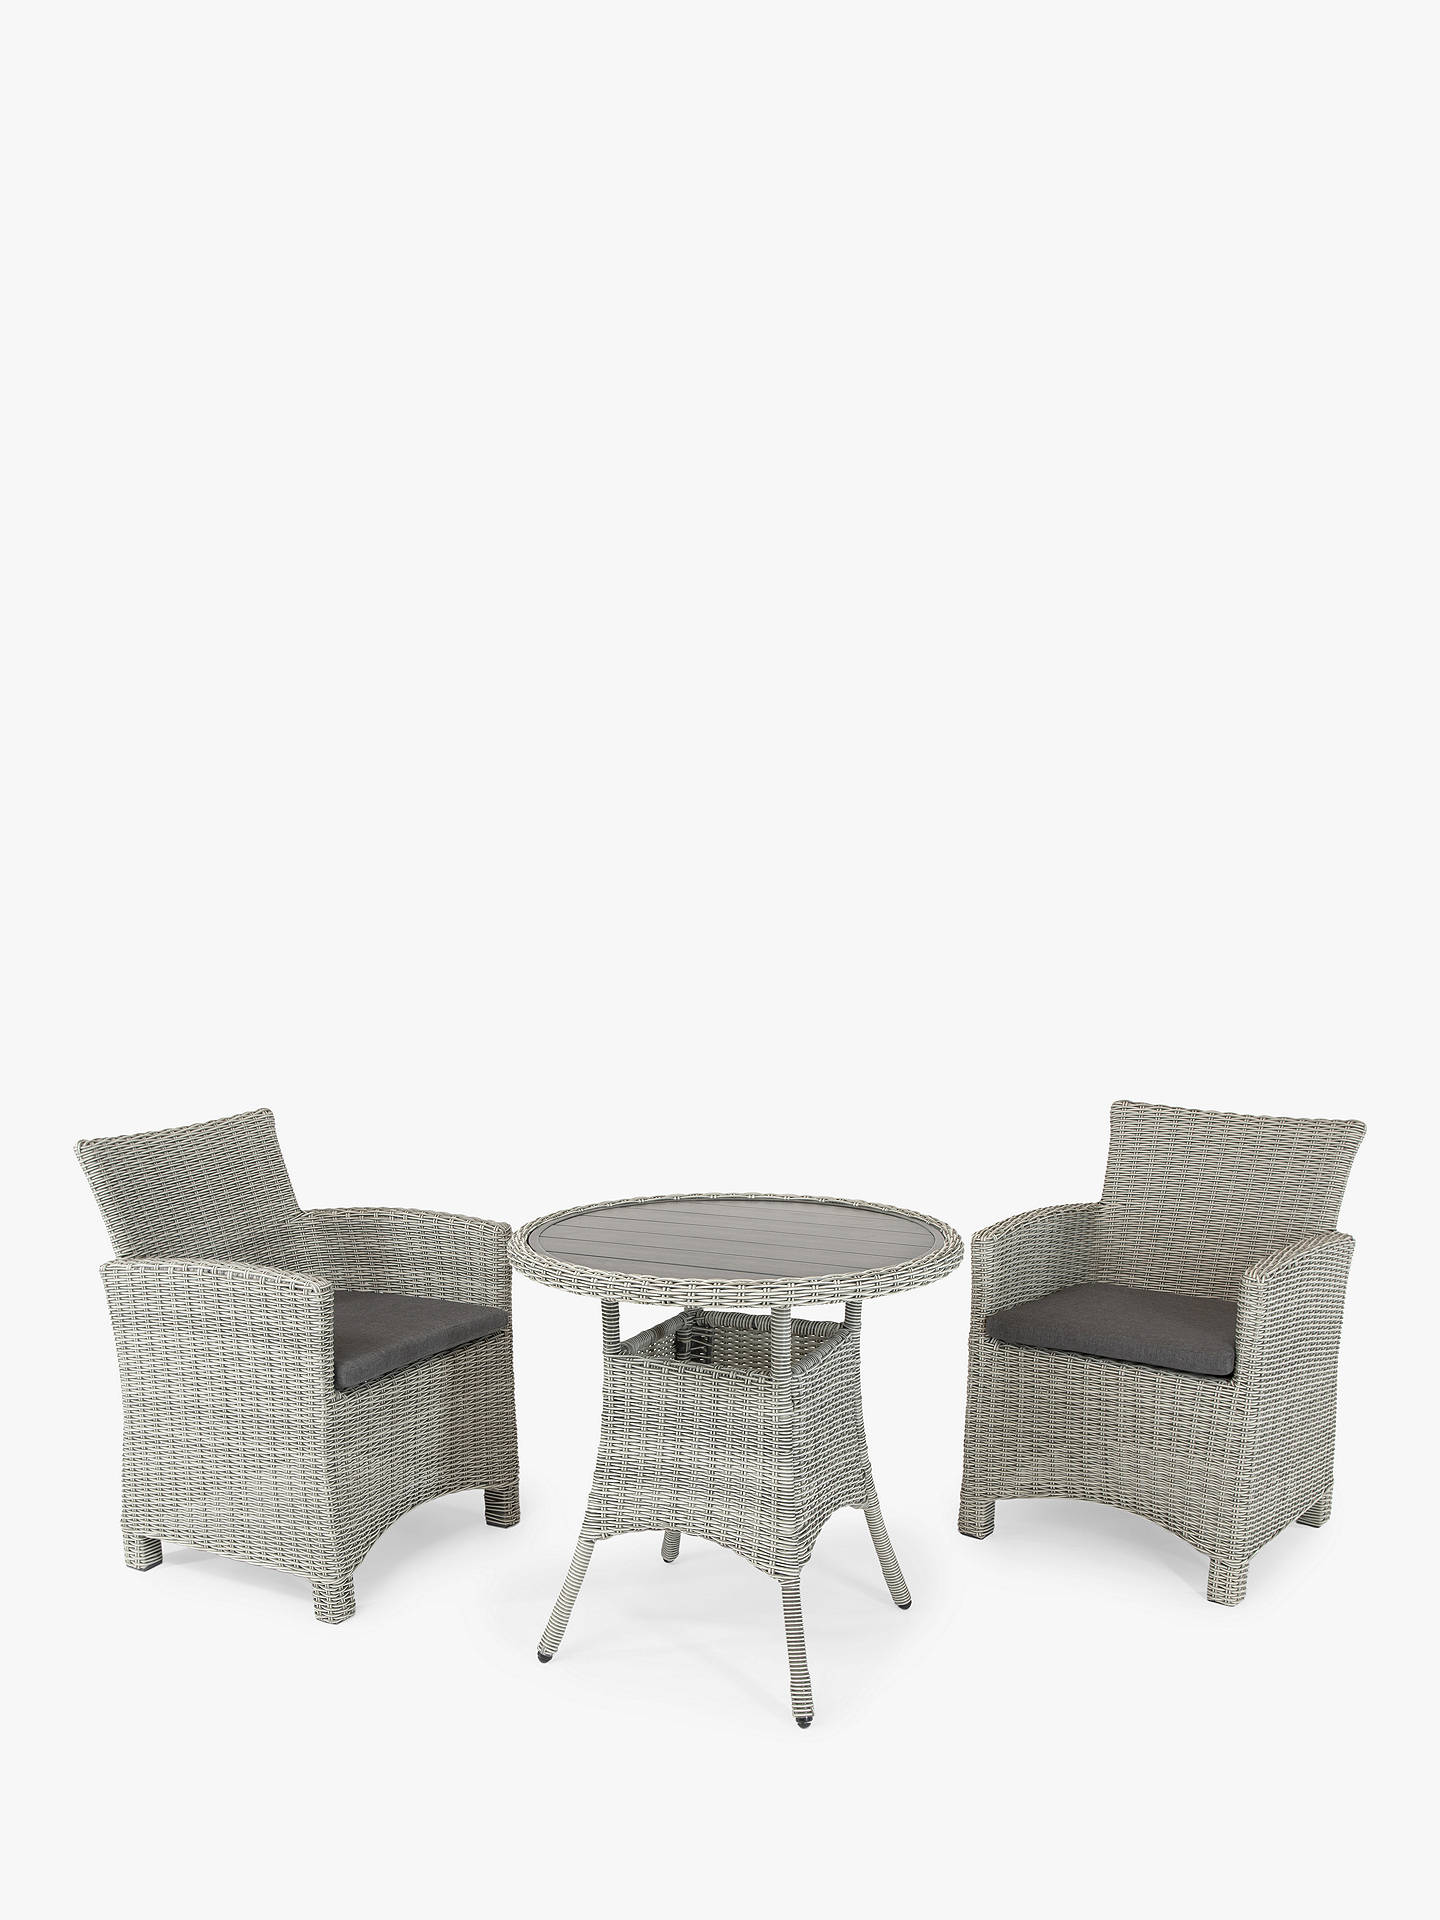 Buy KETTLER Palma 2-Seater Round Garden Bistro Table & Chairs Set, White Wash Online at johnlewis.com